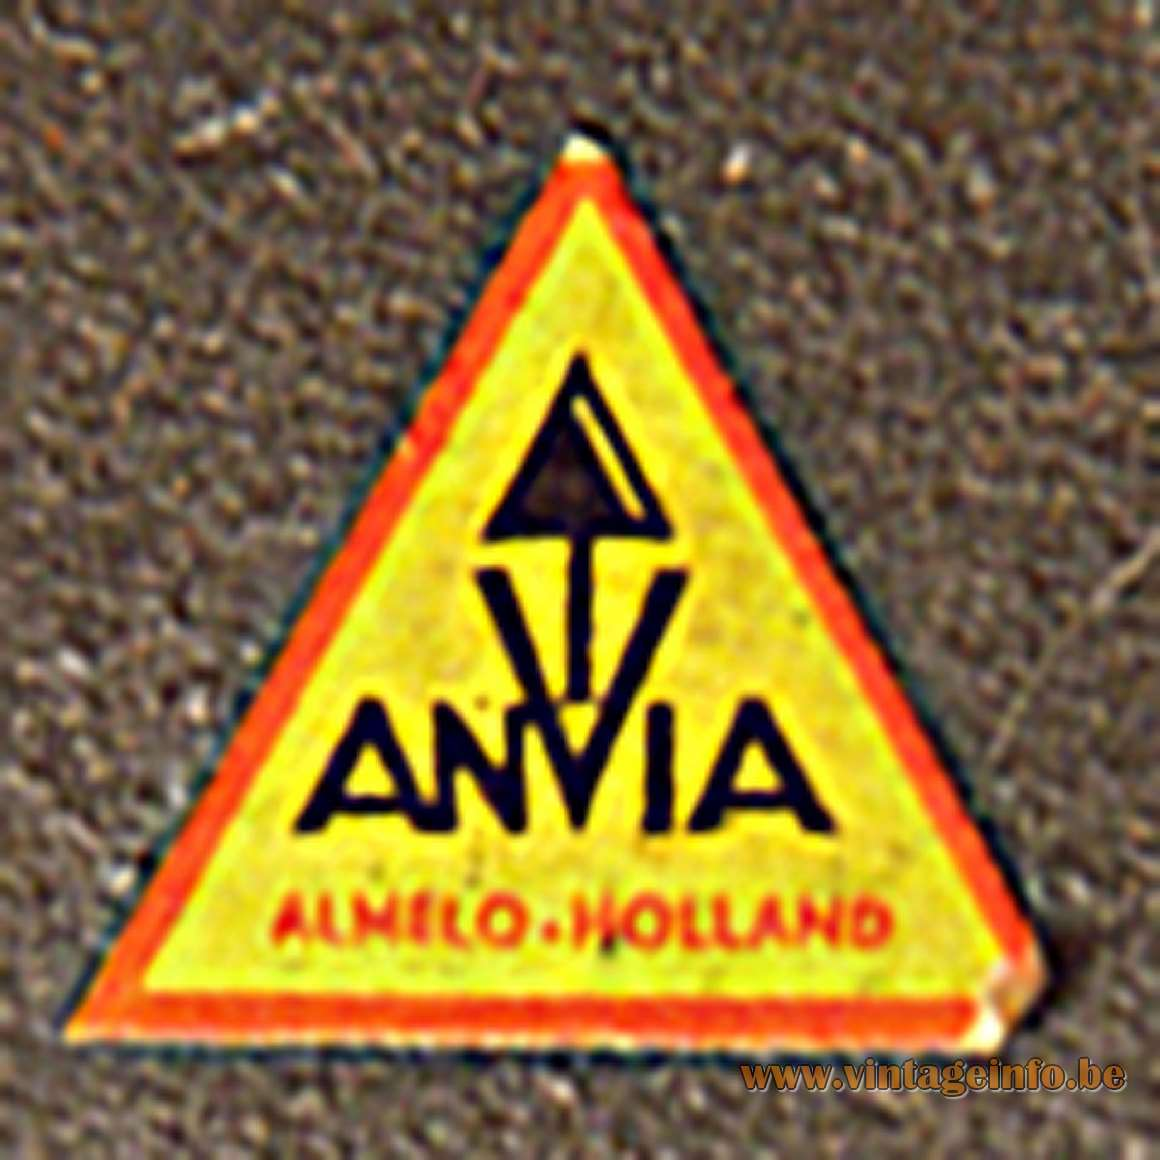 ANVIA Desk Lamp 6043 - ANVIA label & logo